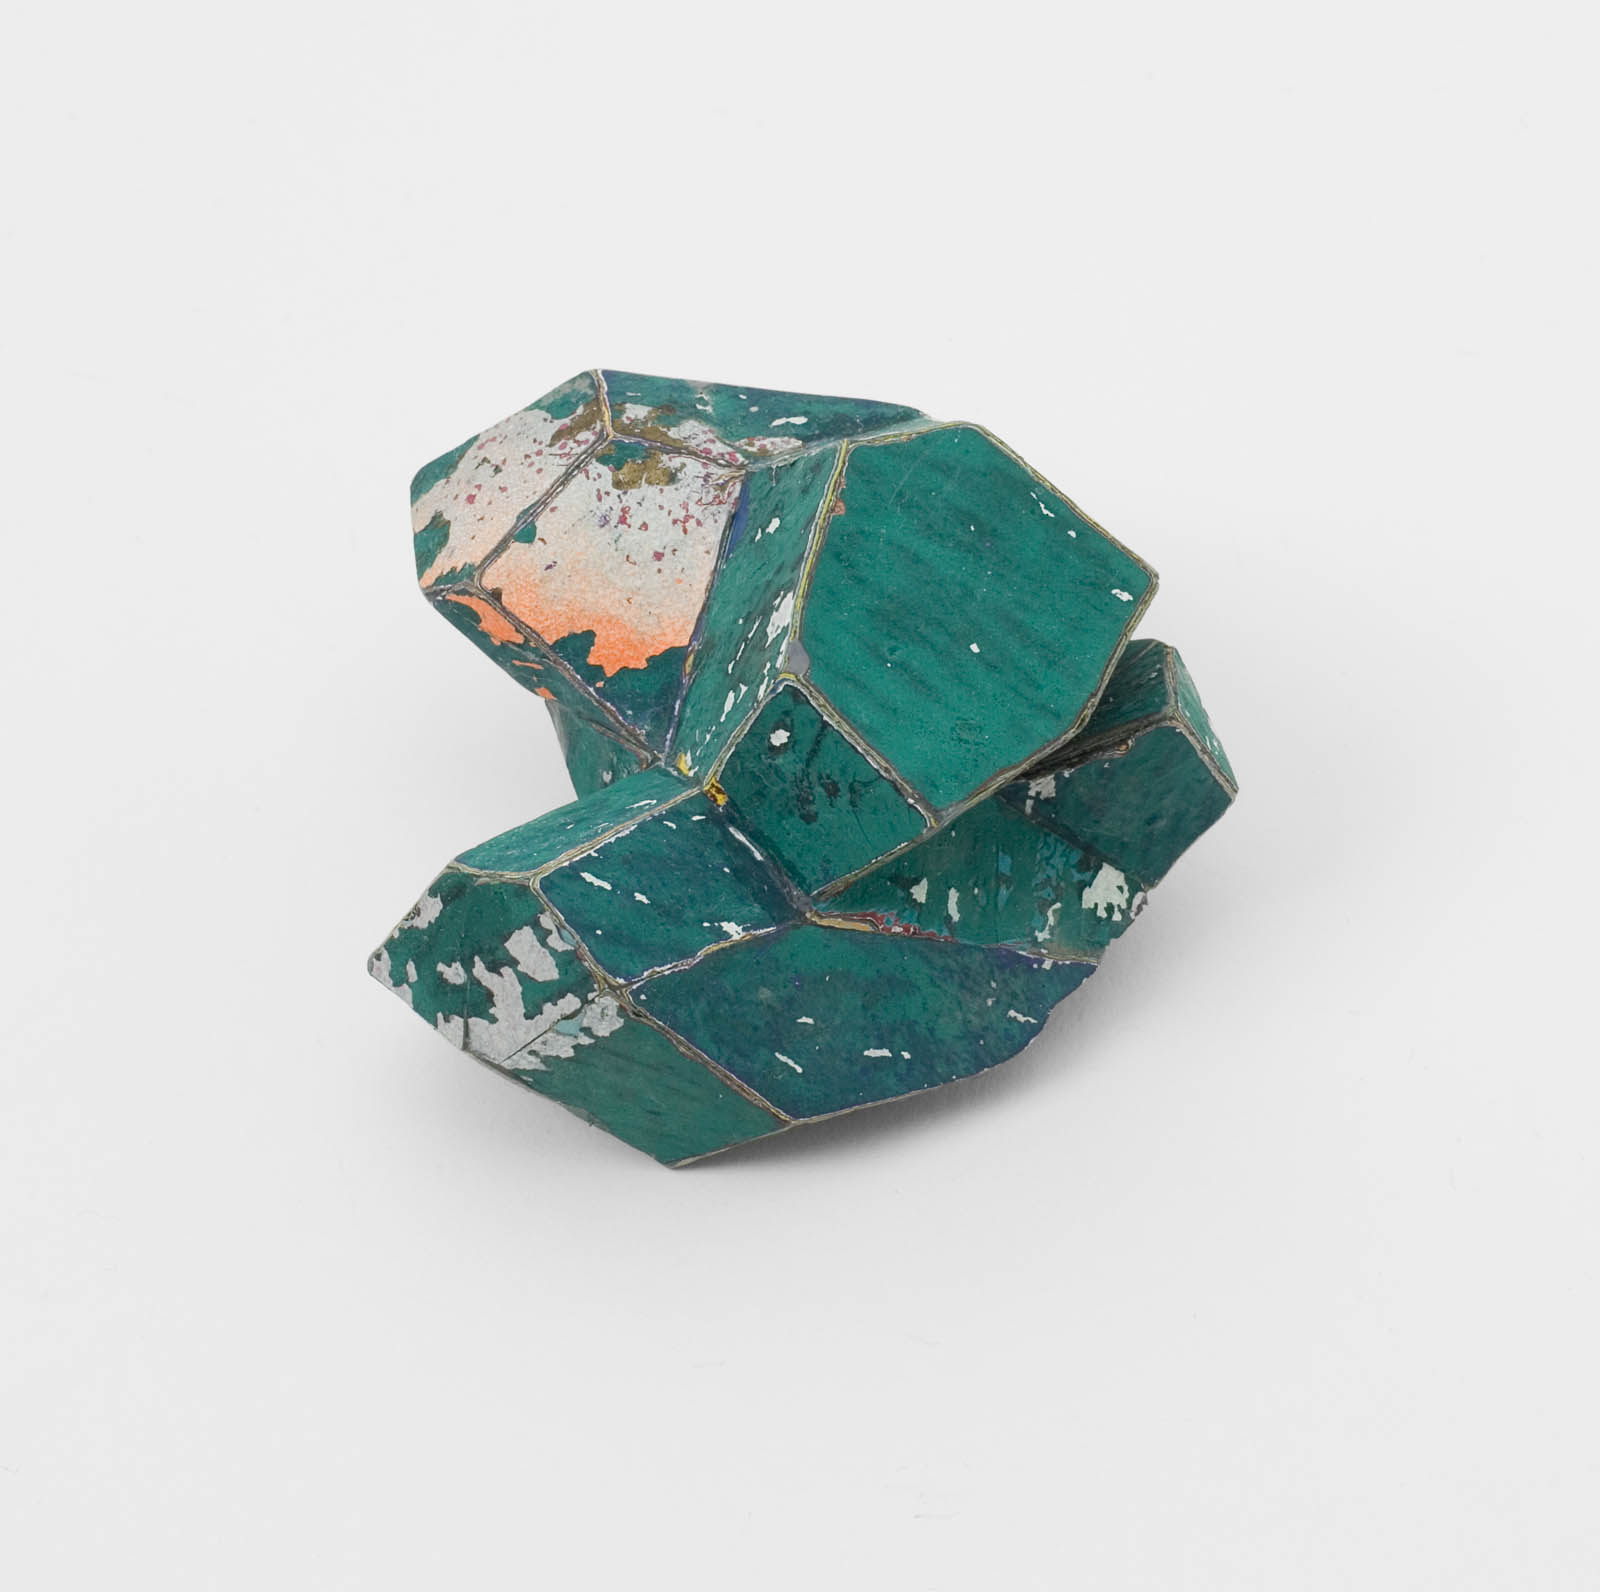 """Forest Green"" I Brooch, 2012 I Graffiti, silver, stainless steel I Photo: Mirei Takeuchi"